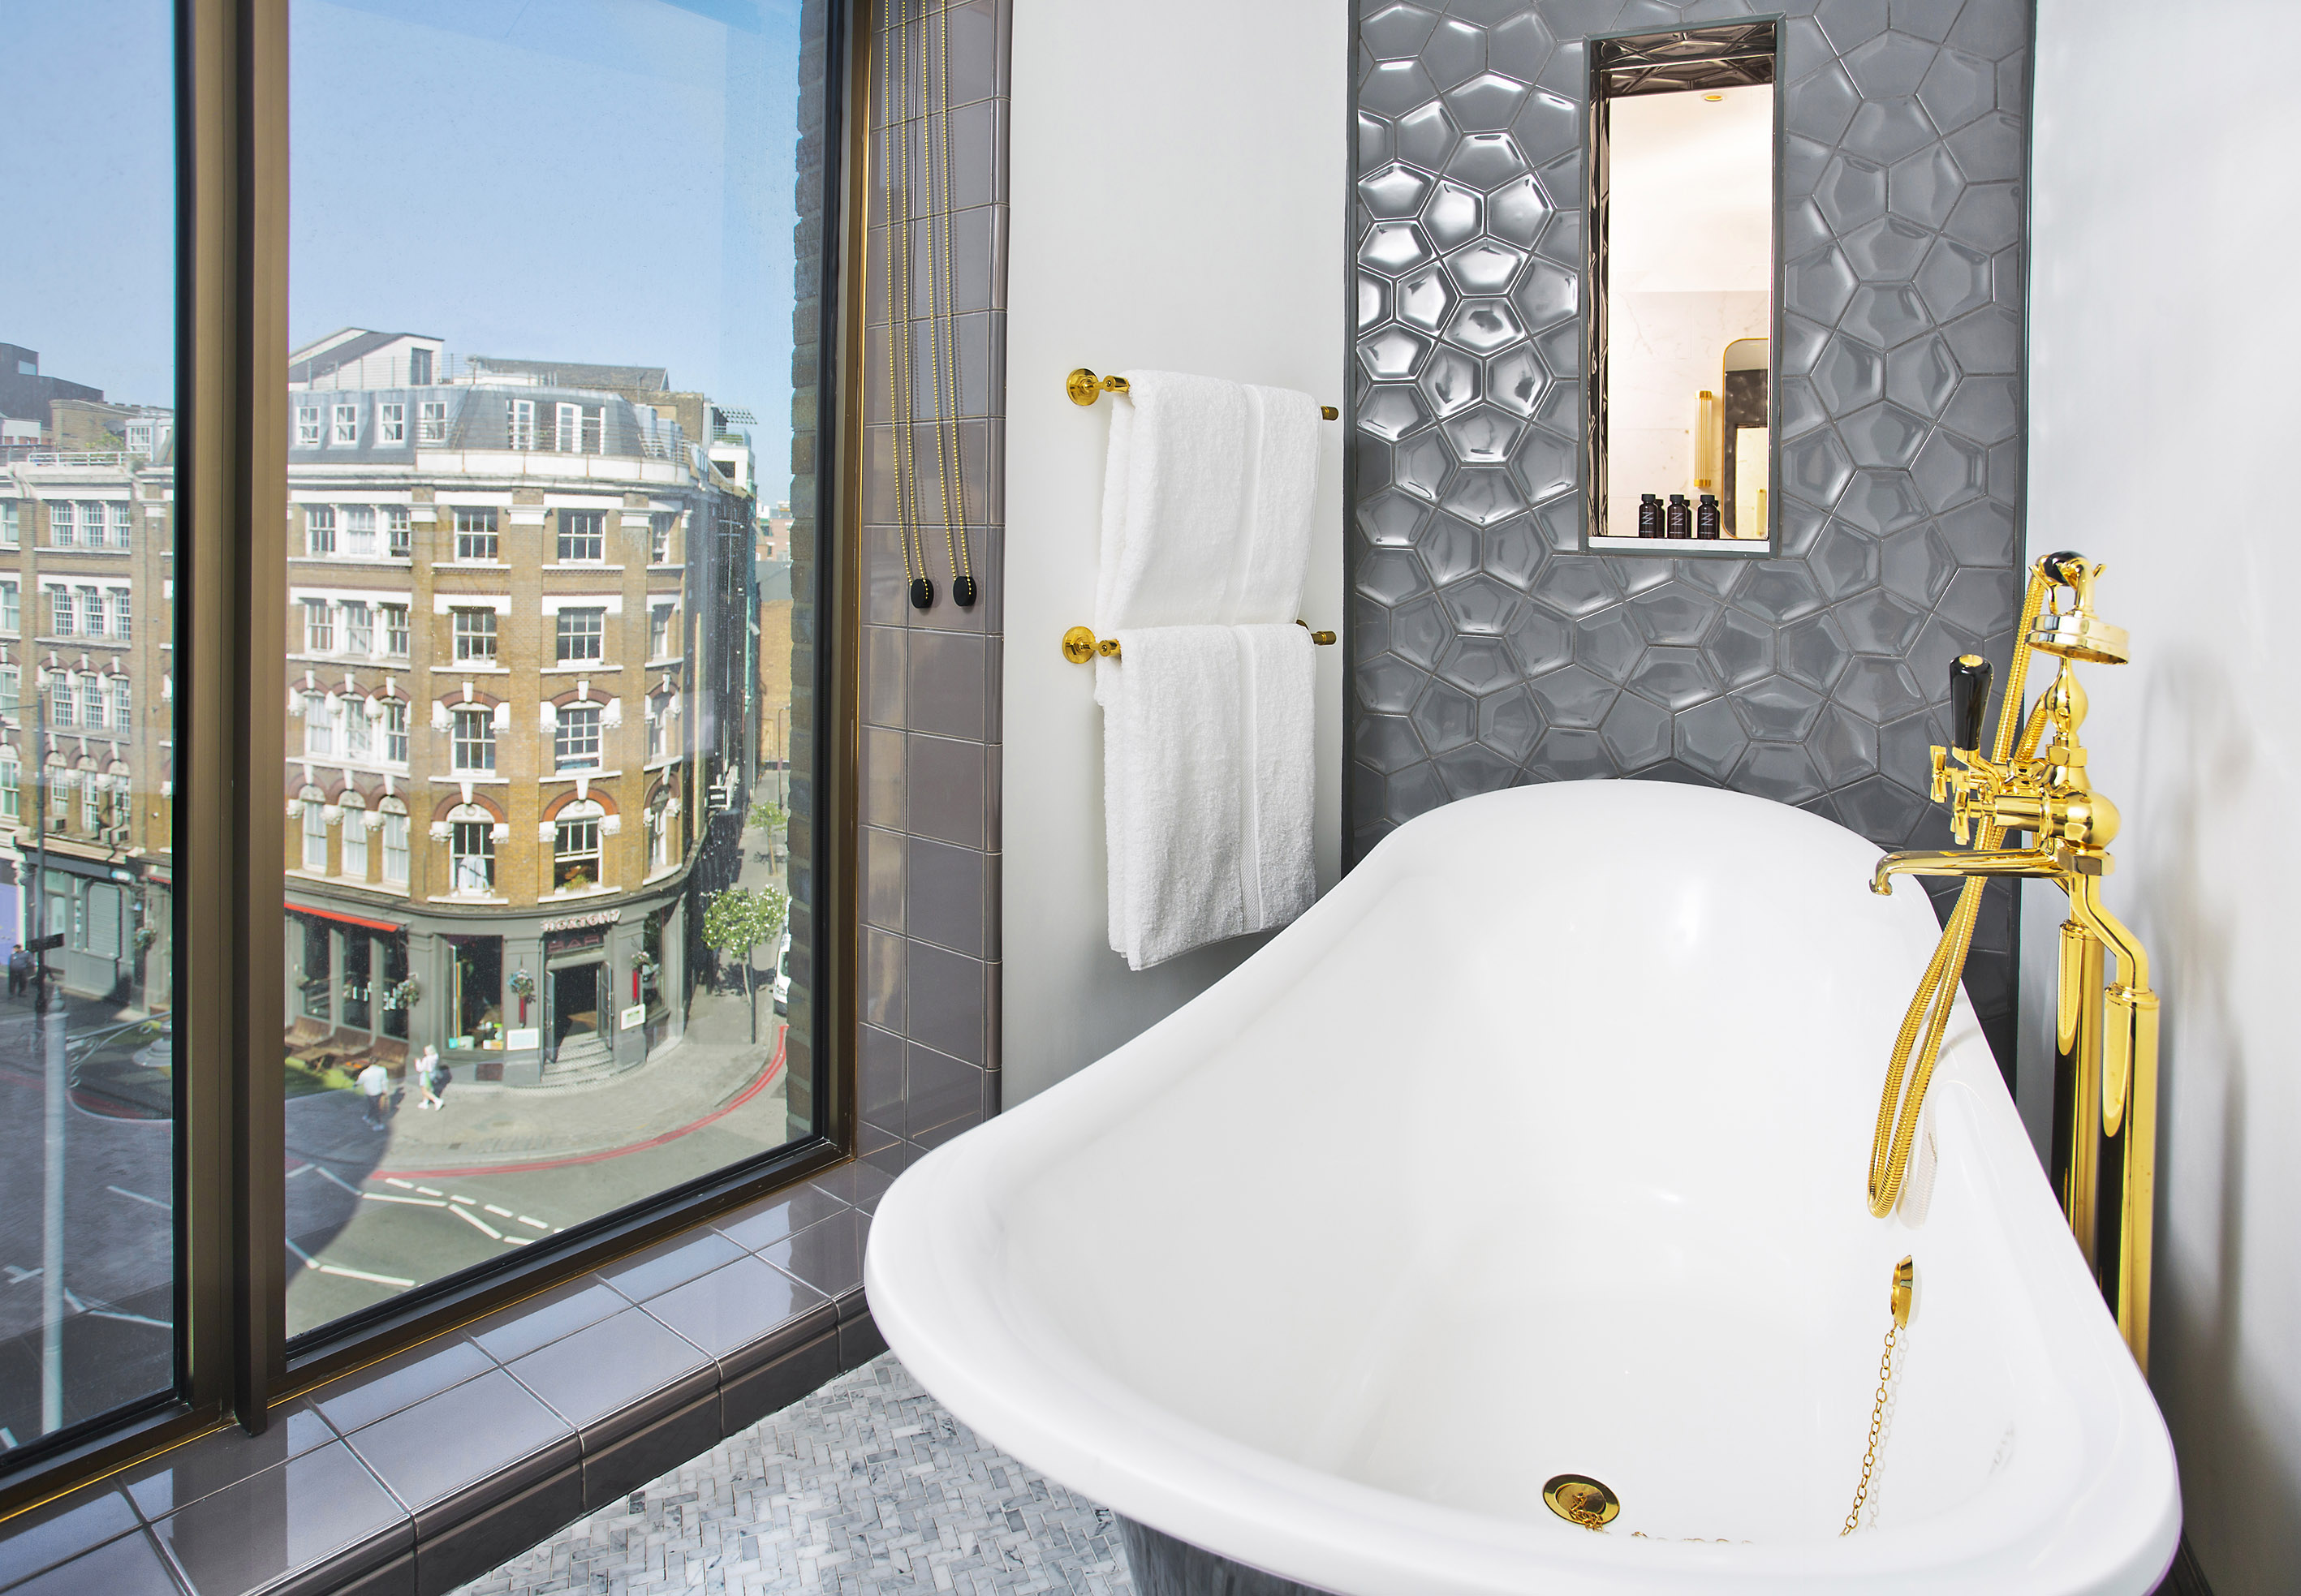 Bathroom with a view, luxury towels - Shoreditch London